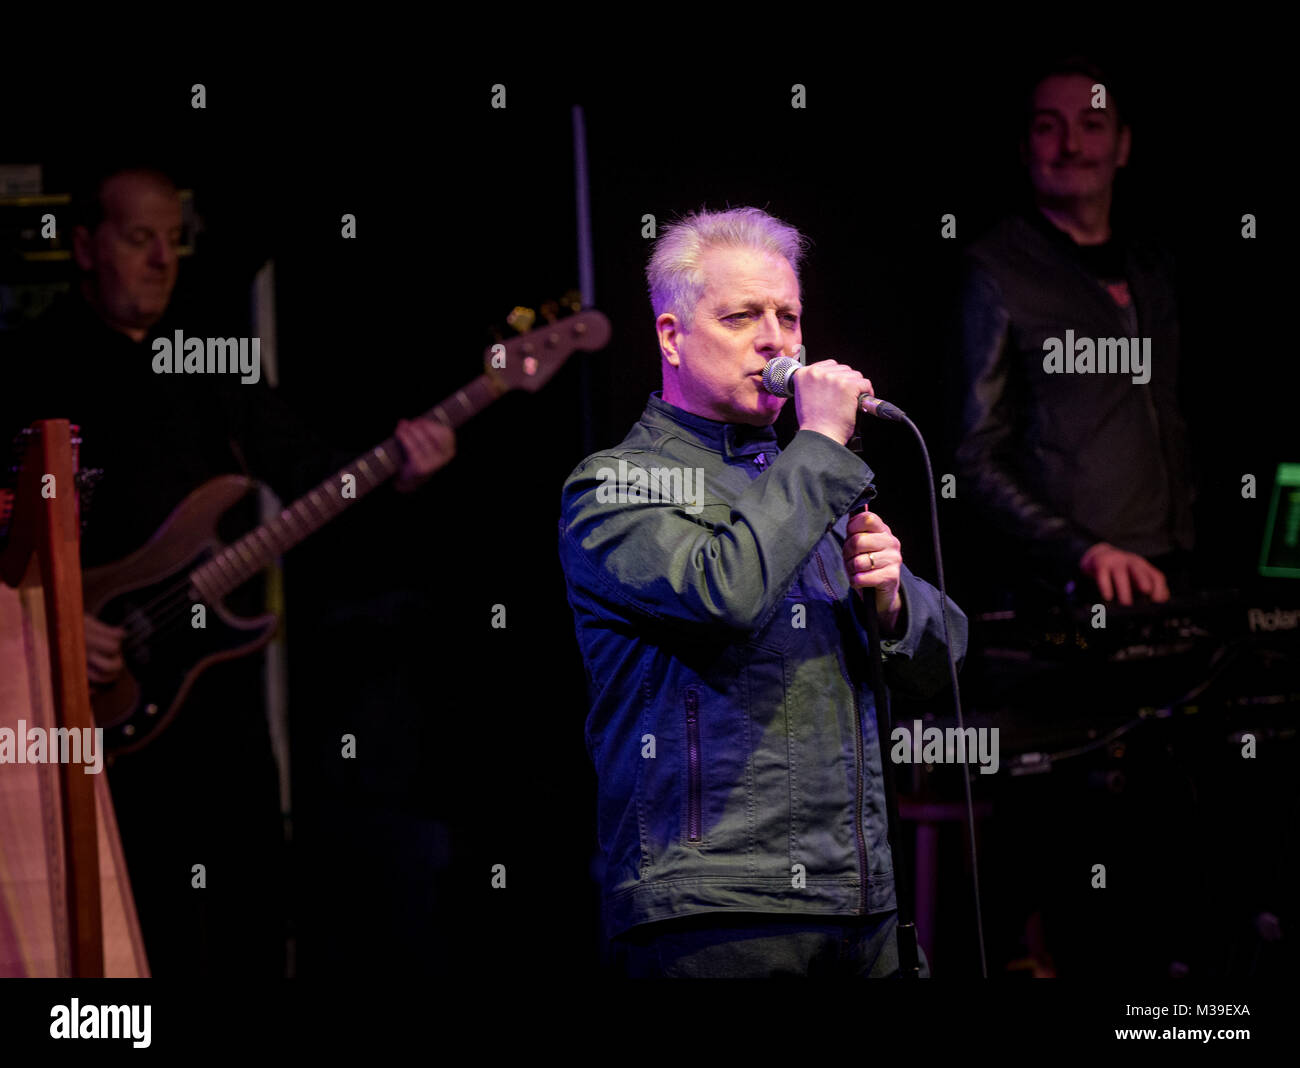 Ian Donaldson (80s band H20) back on stage after a long time to launch his new album at Websters Theatre  , Glasgow - Stock Image